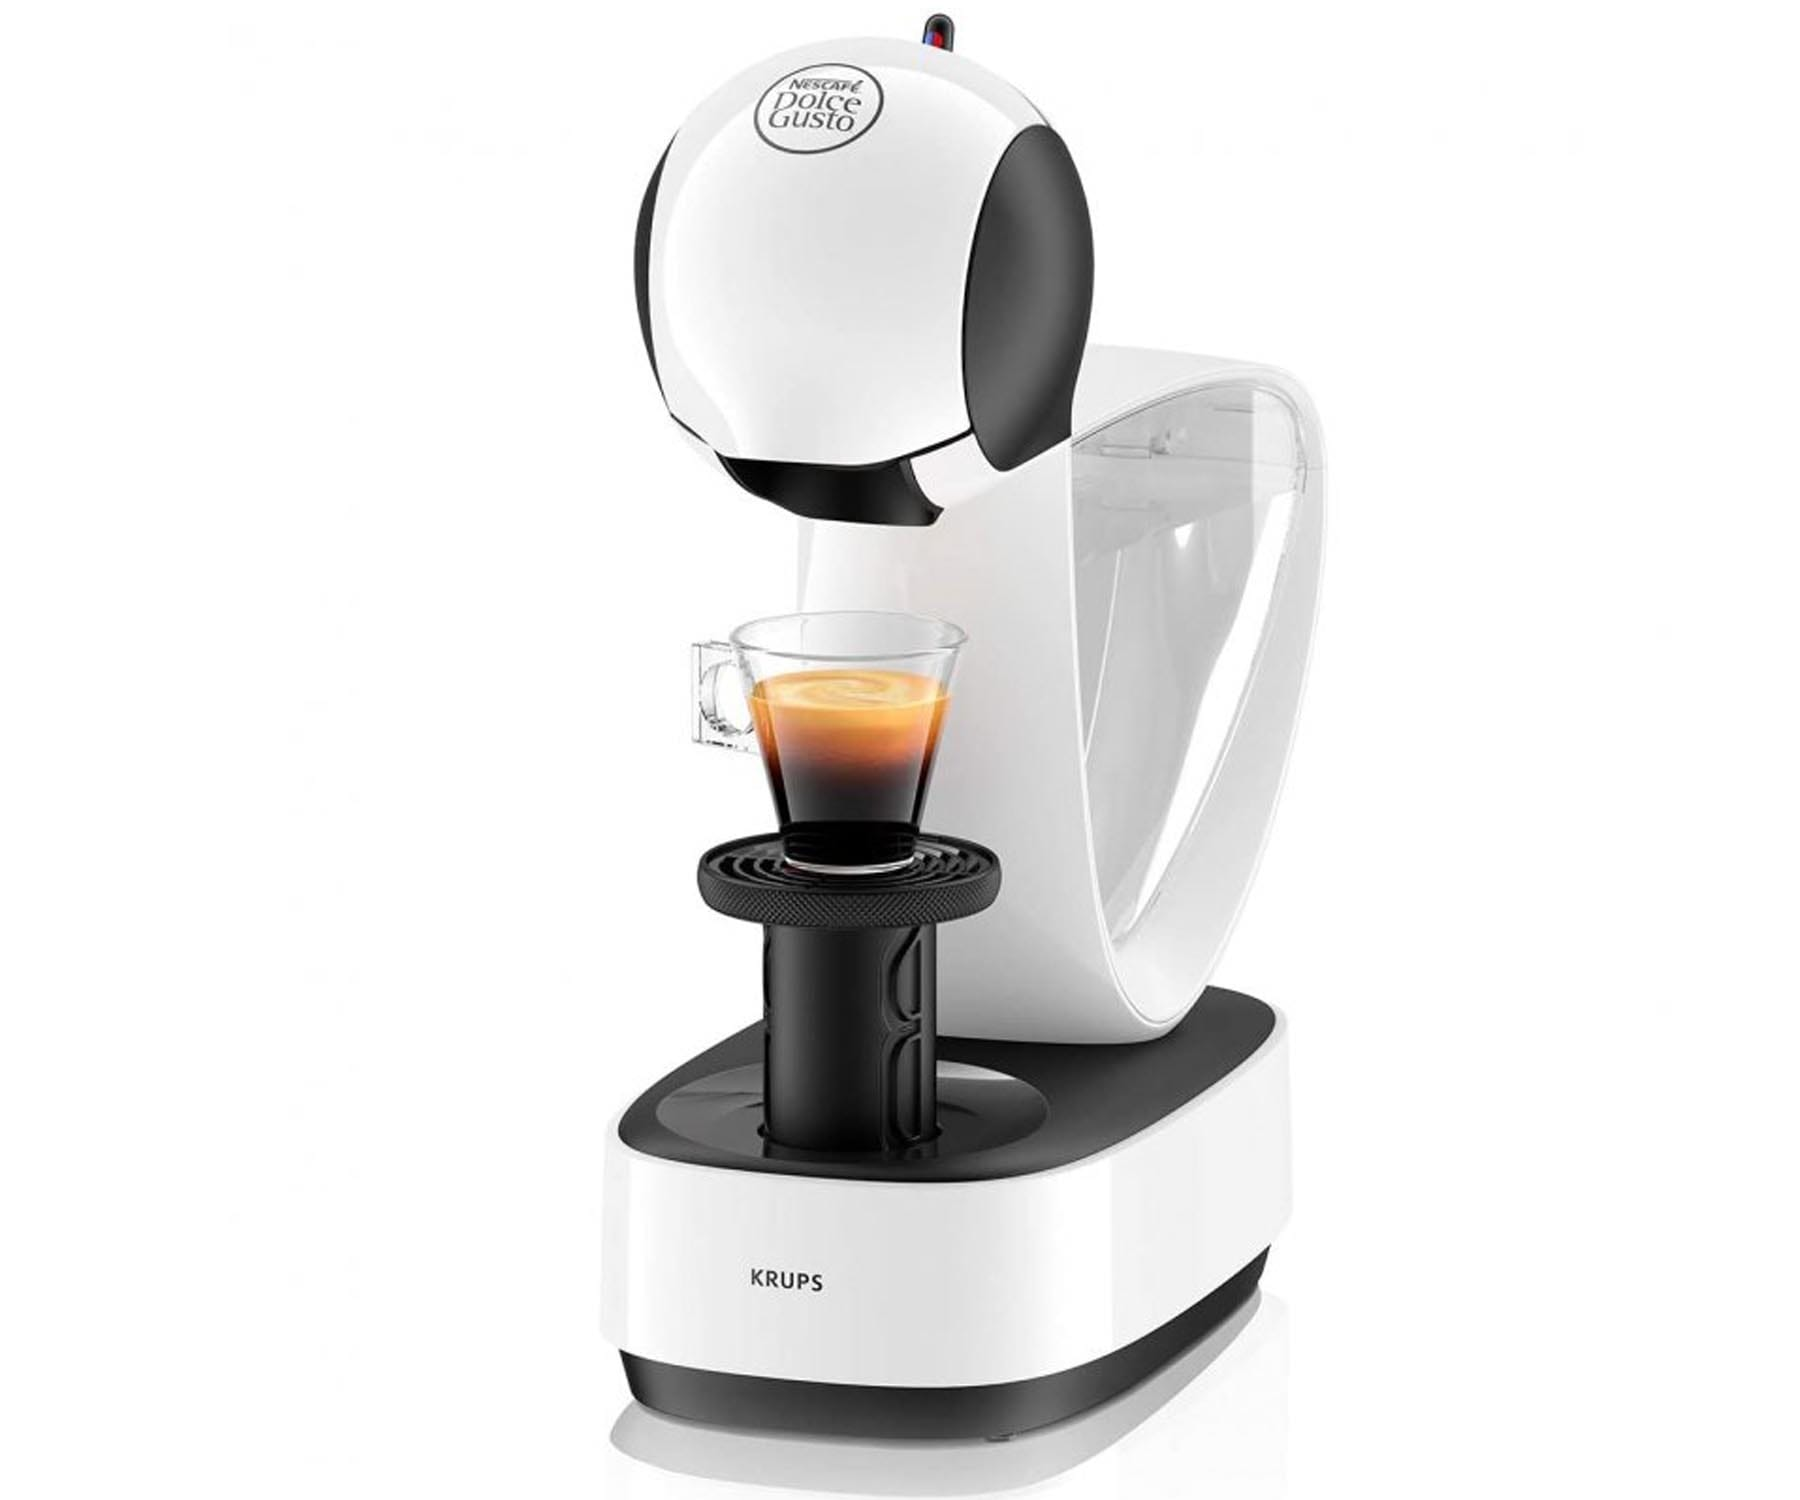 KRUPS KP1701SC INFINISSIMA BLANCA CAFETERA NESCAFÉ DOLCE GUSTO